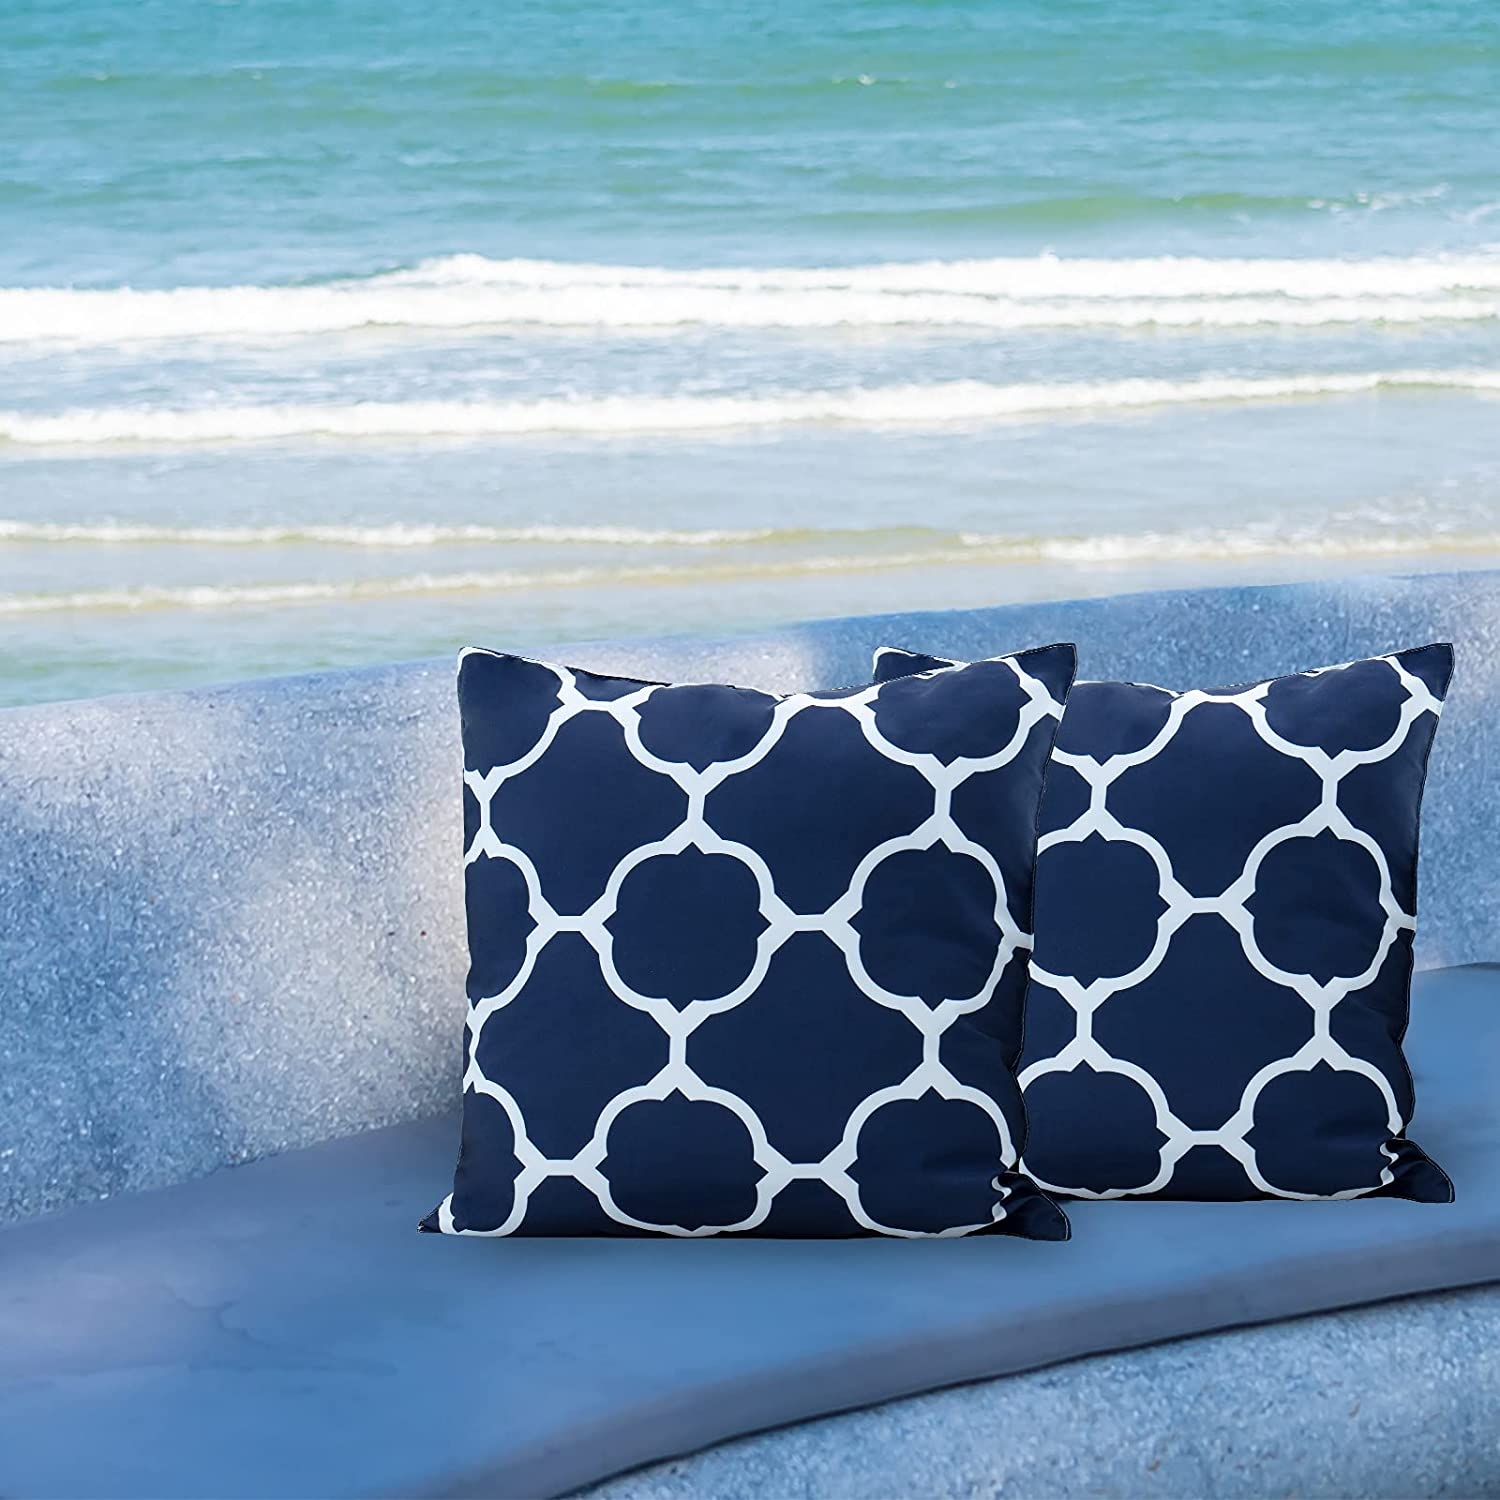 [Ultra Water Resistant] Bonlino Pack of 2 Decorative Outdoor Patio Waterproof Throw Pillow Covers Garden Cushion Sham Pillowcase Shell for Patio Furniture and Sunbrella 18x18 Inch ( Blue Geo Pattern)